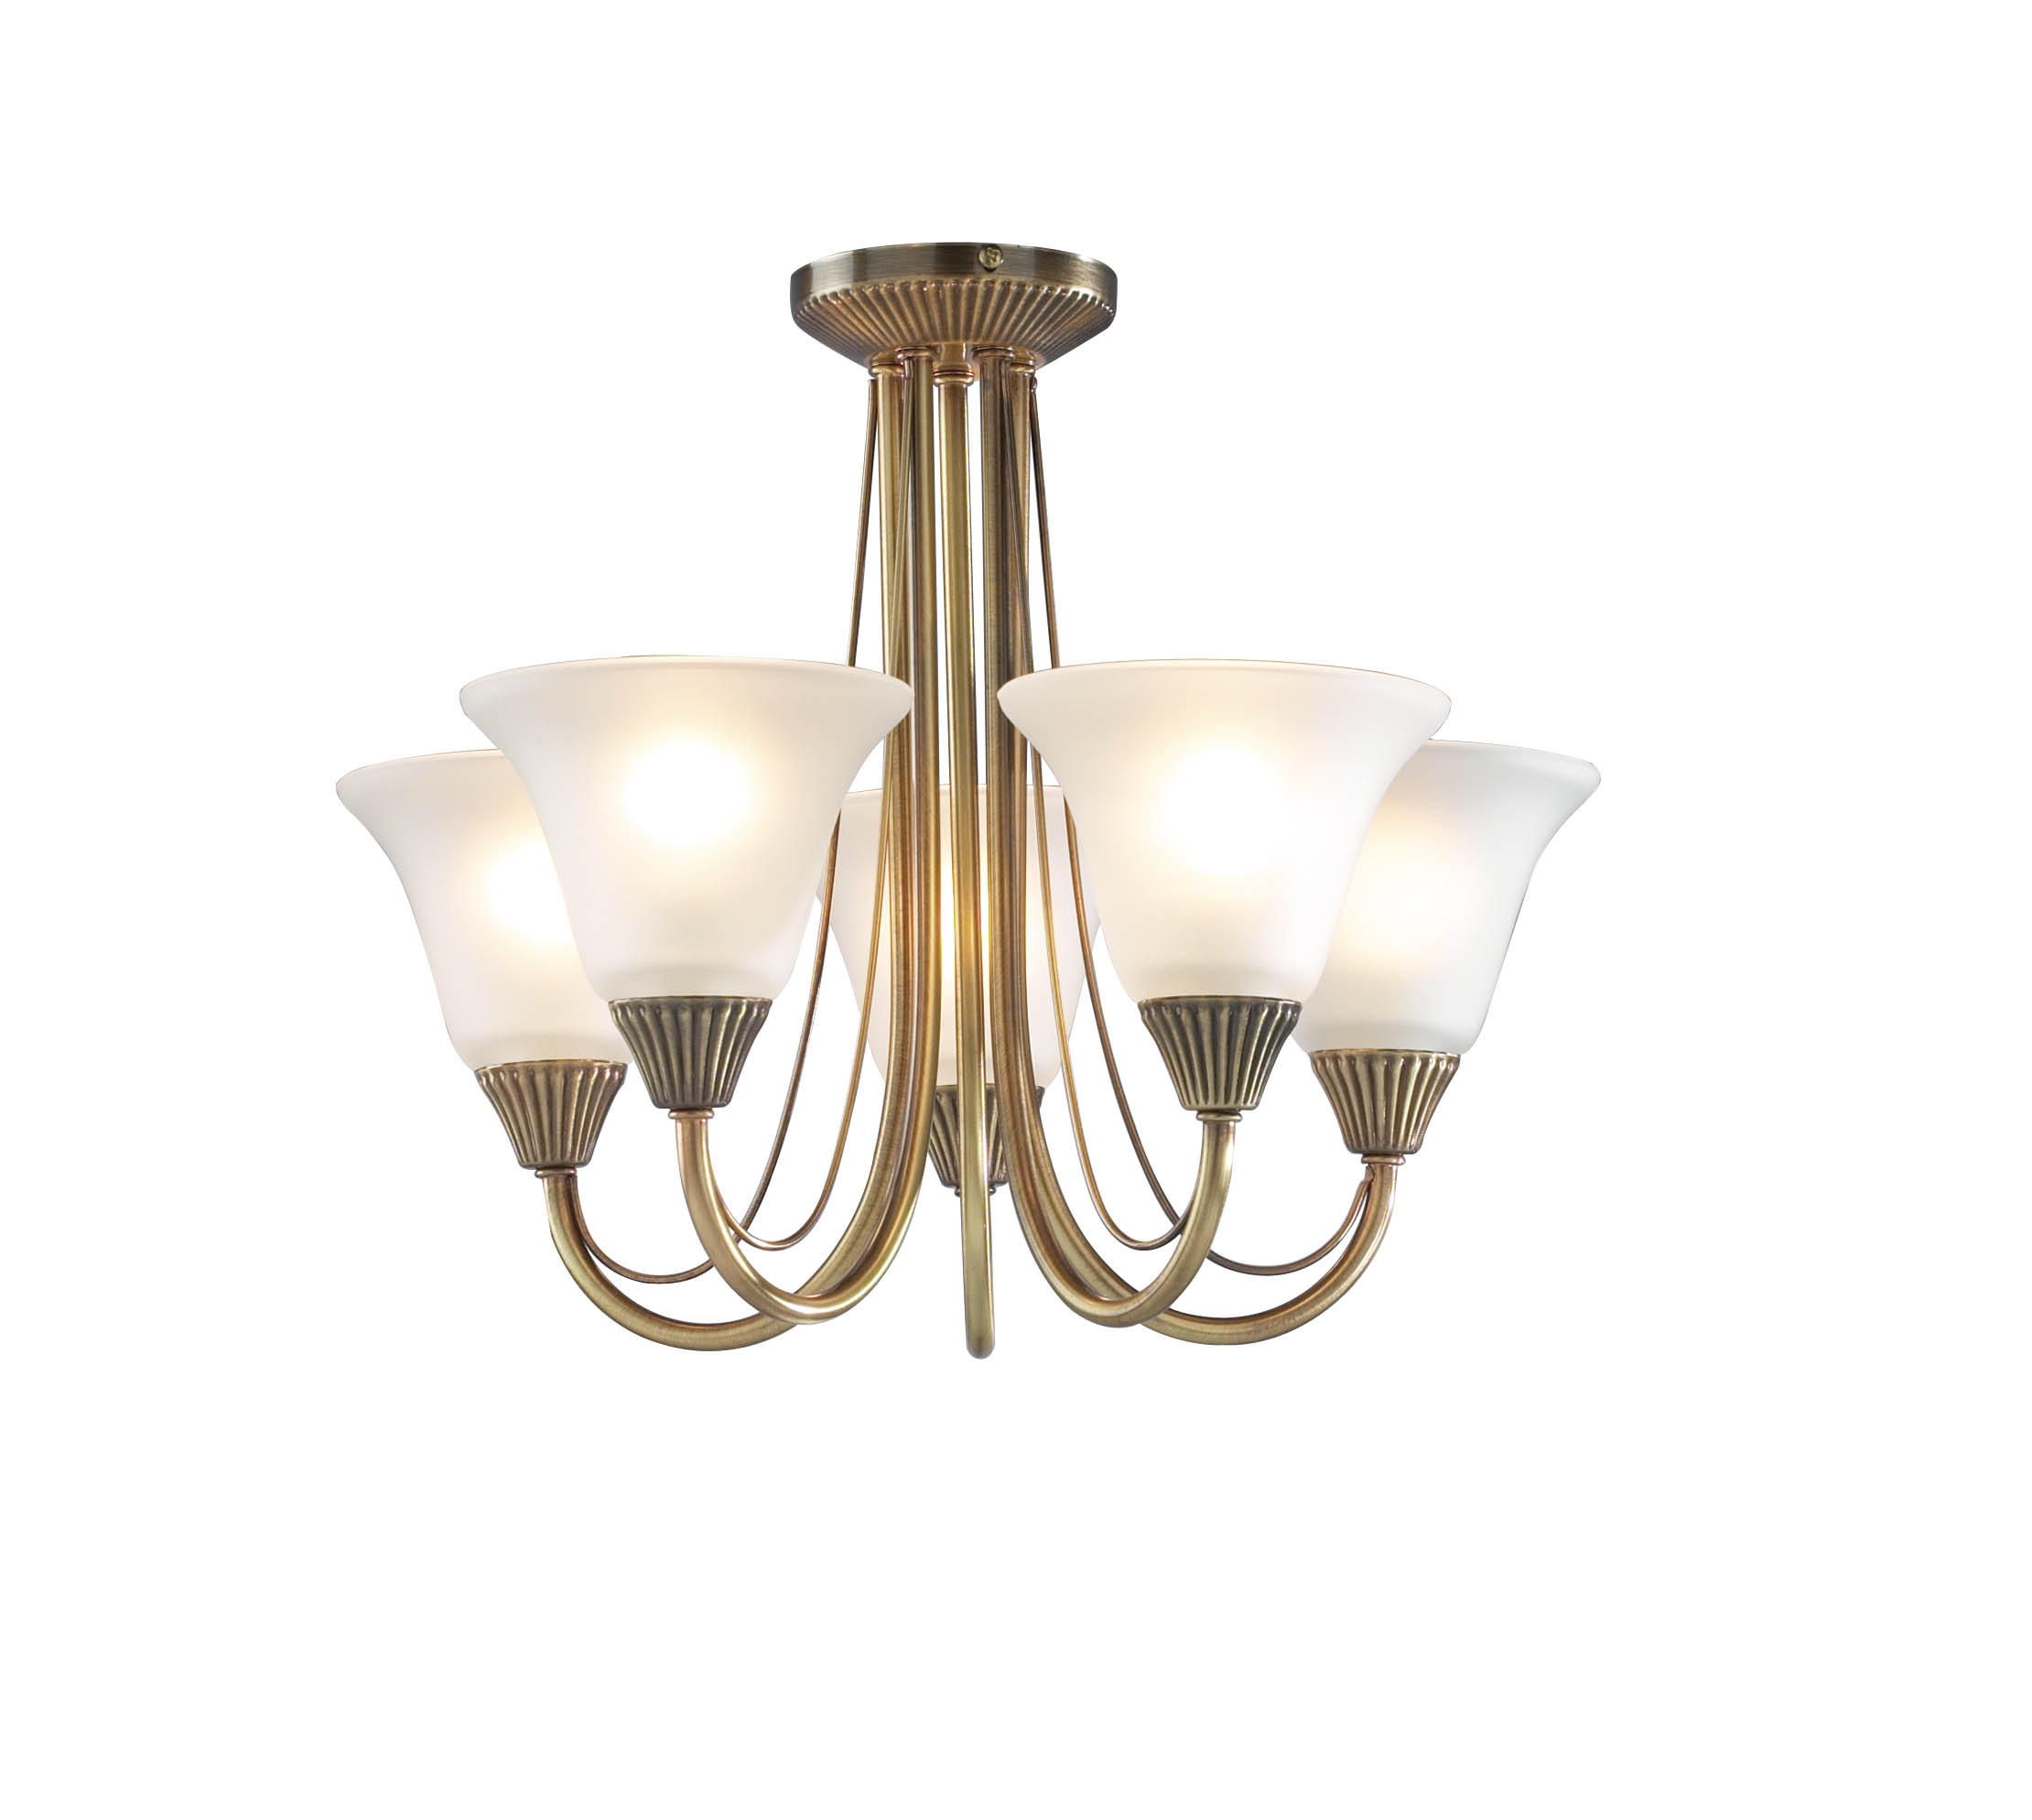 Boston 5 Light Antique Brass Ceiling 030082 Bos05